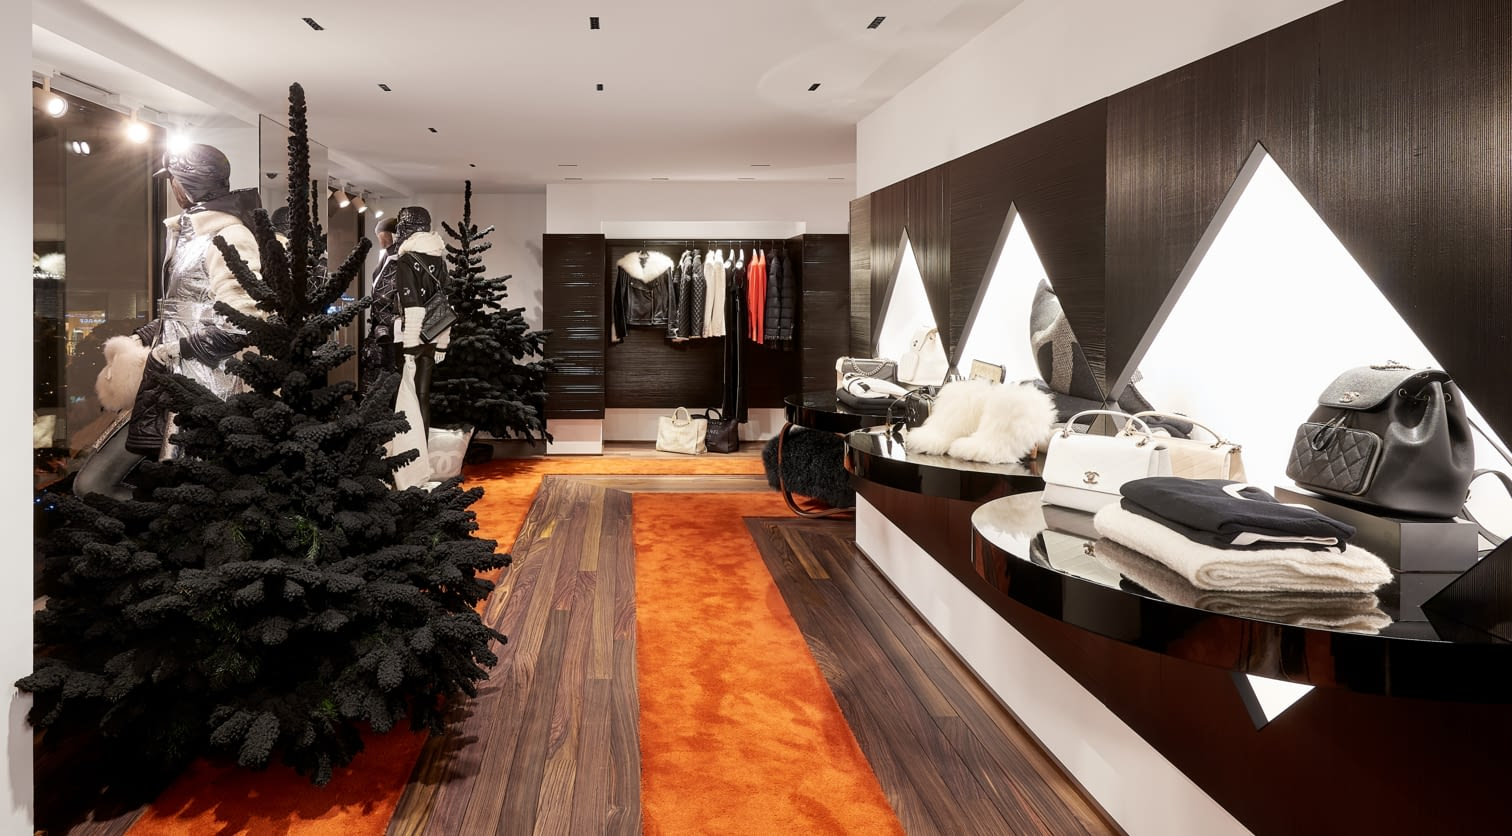 04_Couchevel_ephemeral_boutique_pictures_by_Olivier_Saillant_HD.jpg